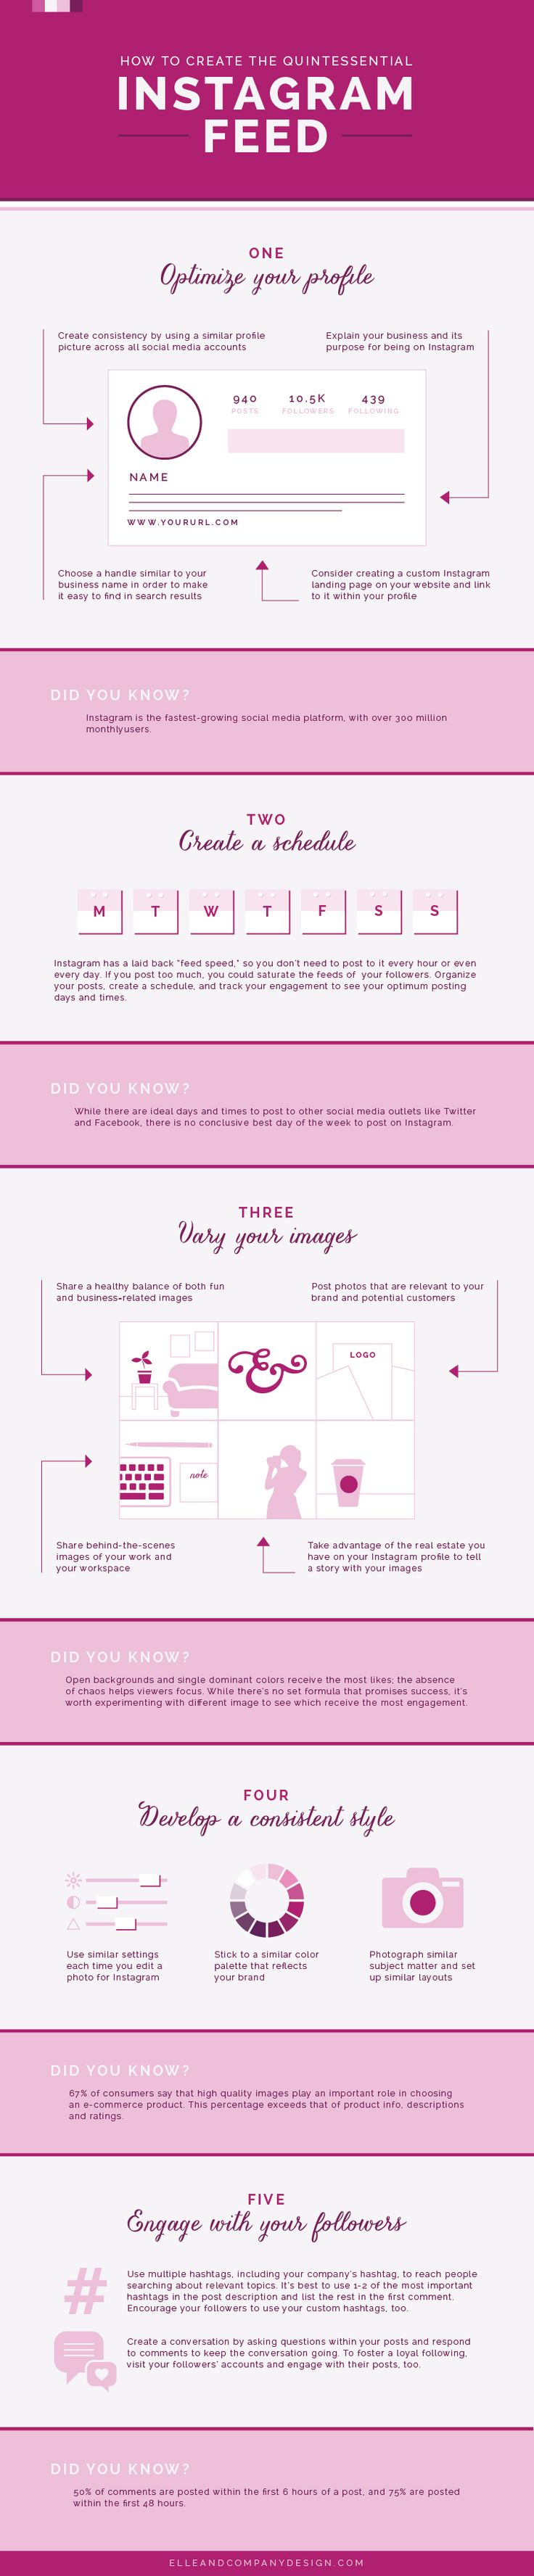 If anything, I just love the color pink. I don't have an Insta account so I think this info graphic could be helpful.